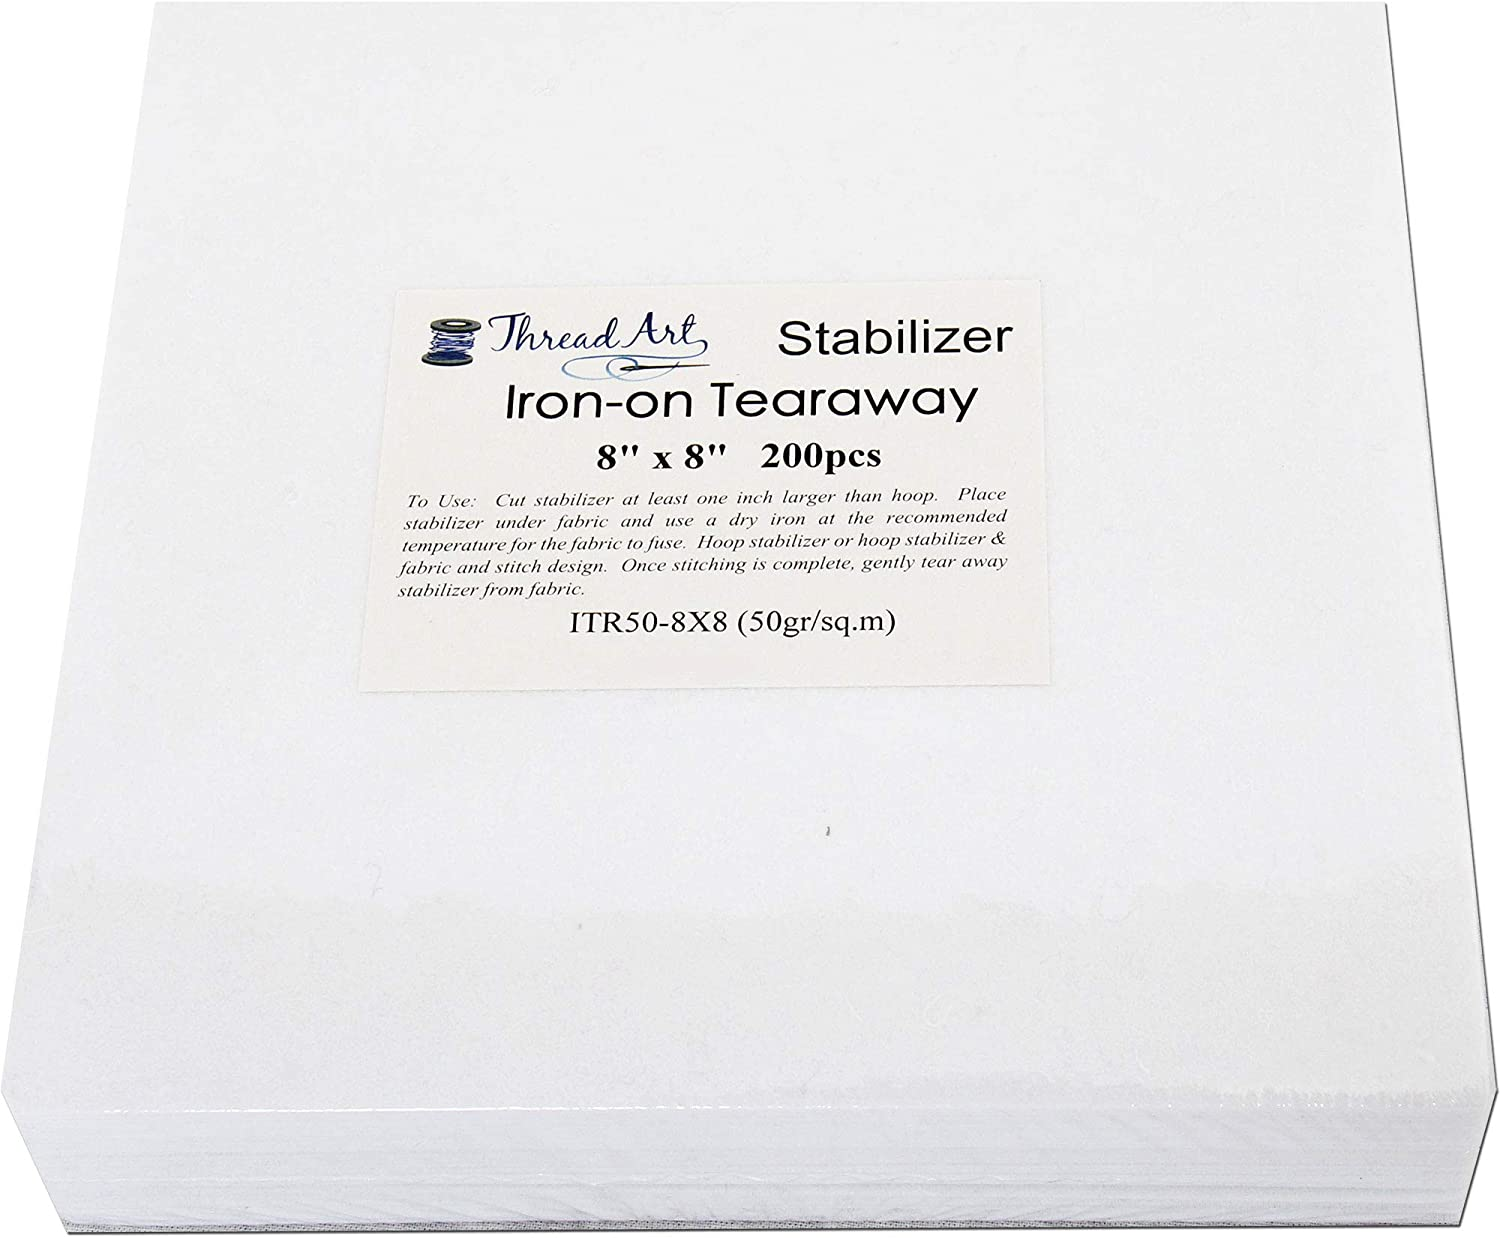 Sticky in Rolls and Precut Sheets For Machine Embroidery 12 x 50 yd roll Threadart Tearaway Embroidery Stabilizer Washaway Also Available Over 20 Additional Styles of Cutaway 1.6 oz Medium Weight Tearaway